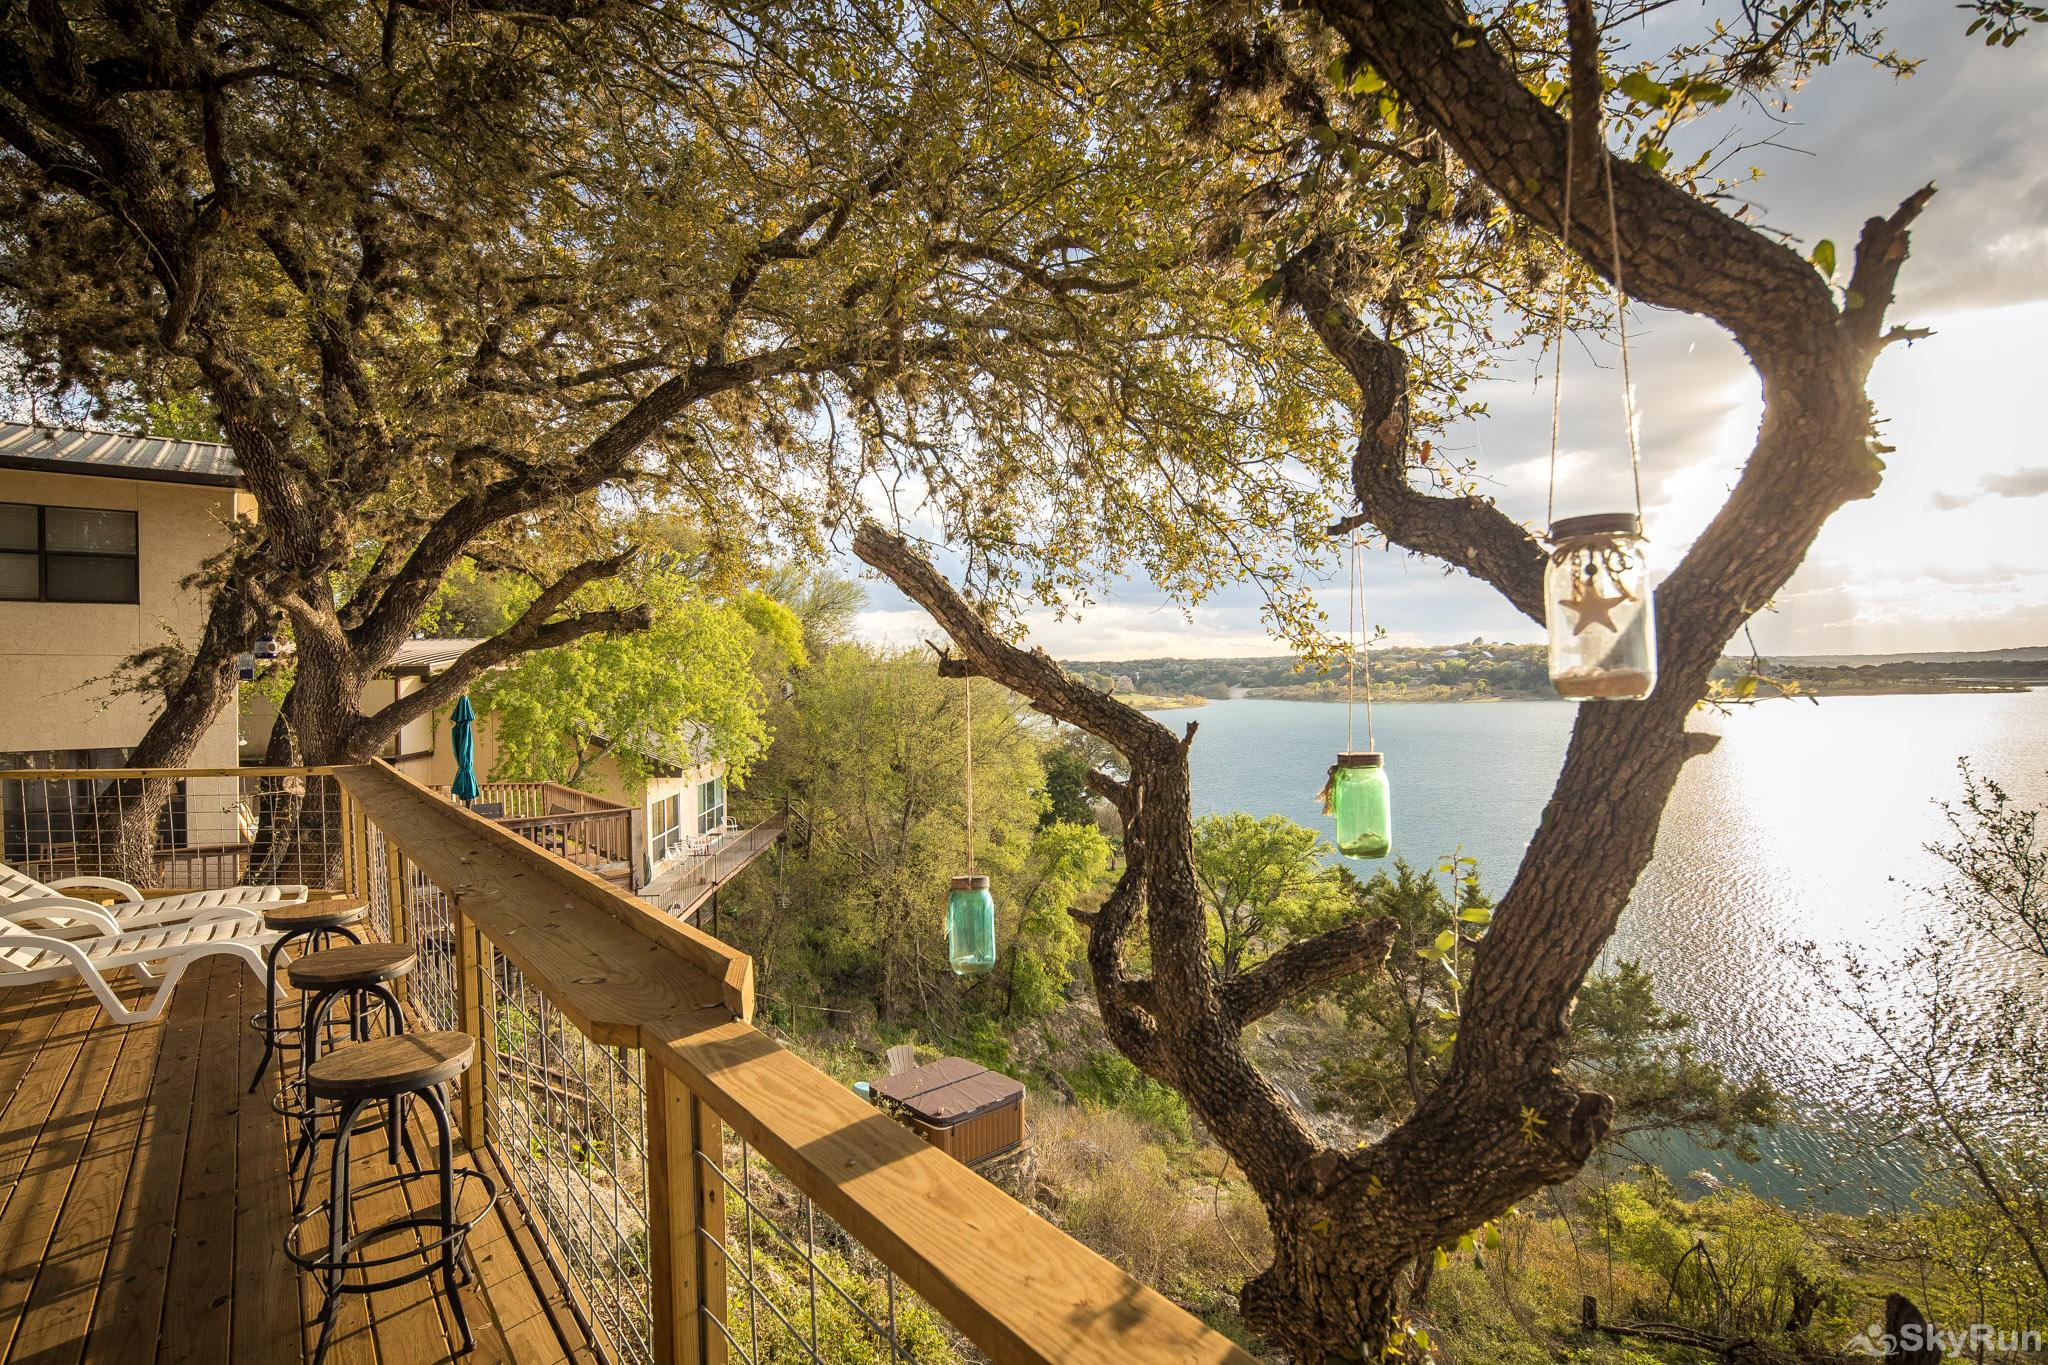 CLIFF HOUSE AT CANYON LAKE Enjoy the deck shaded by large oak trees